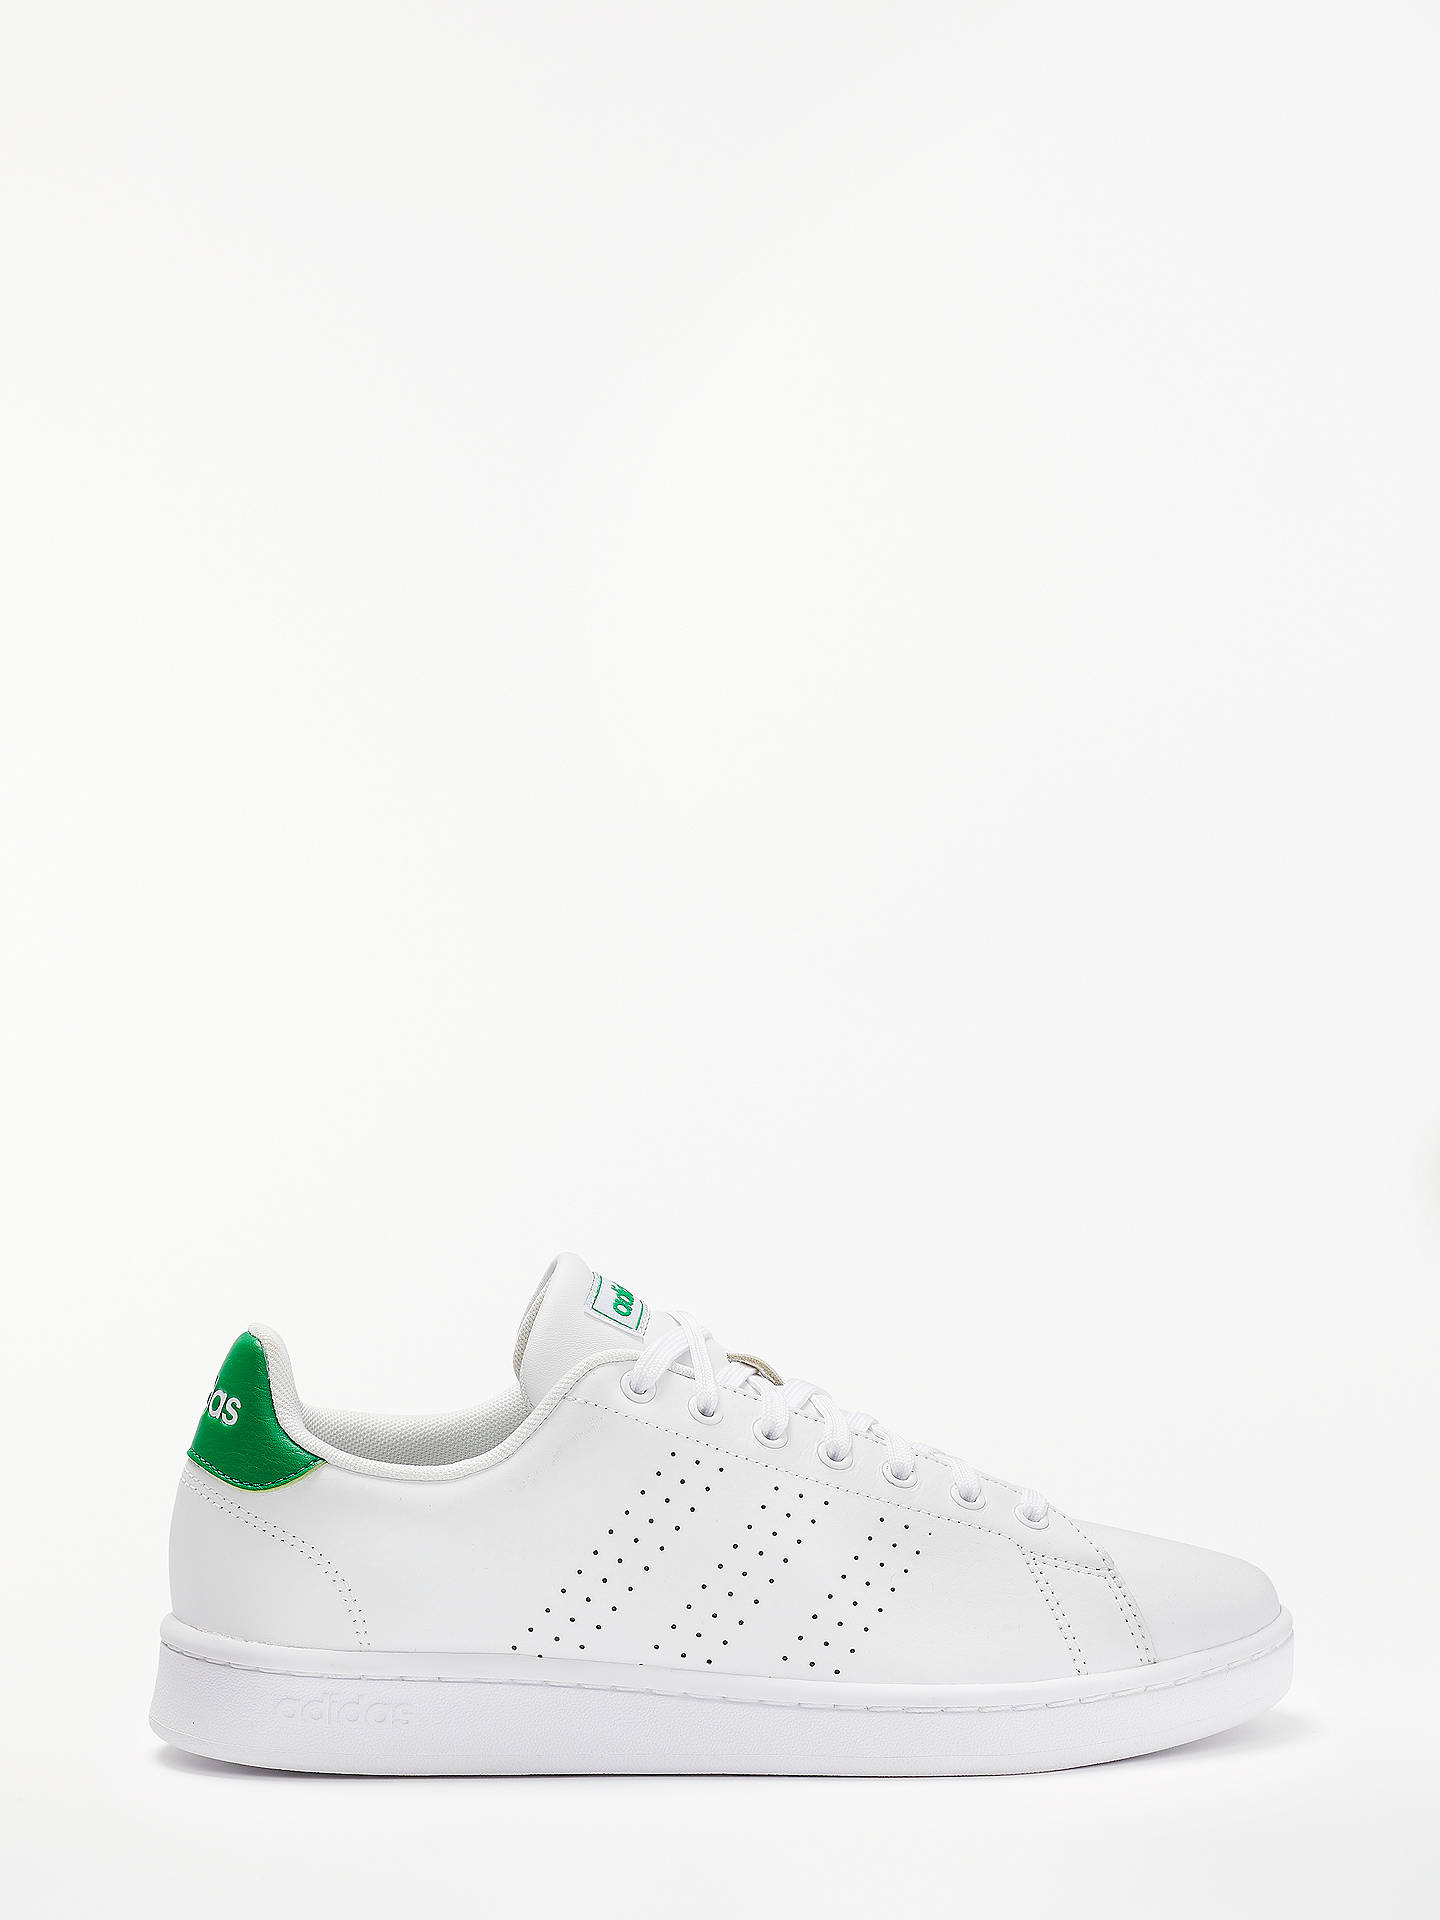 adidas Advantage Men's Trainers at John Lewis & Partners